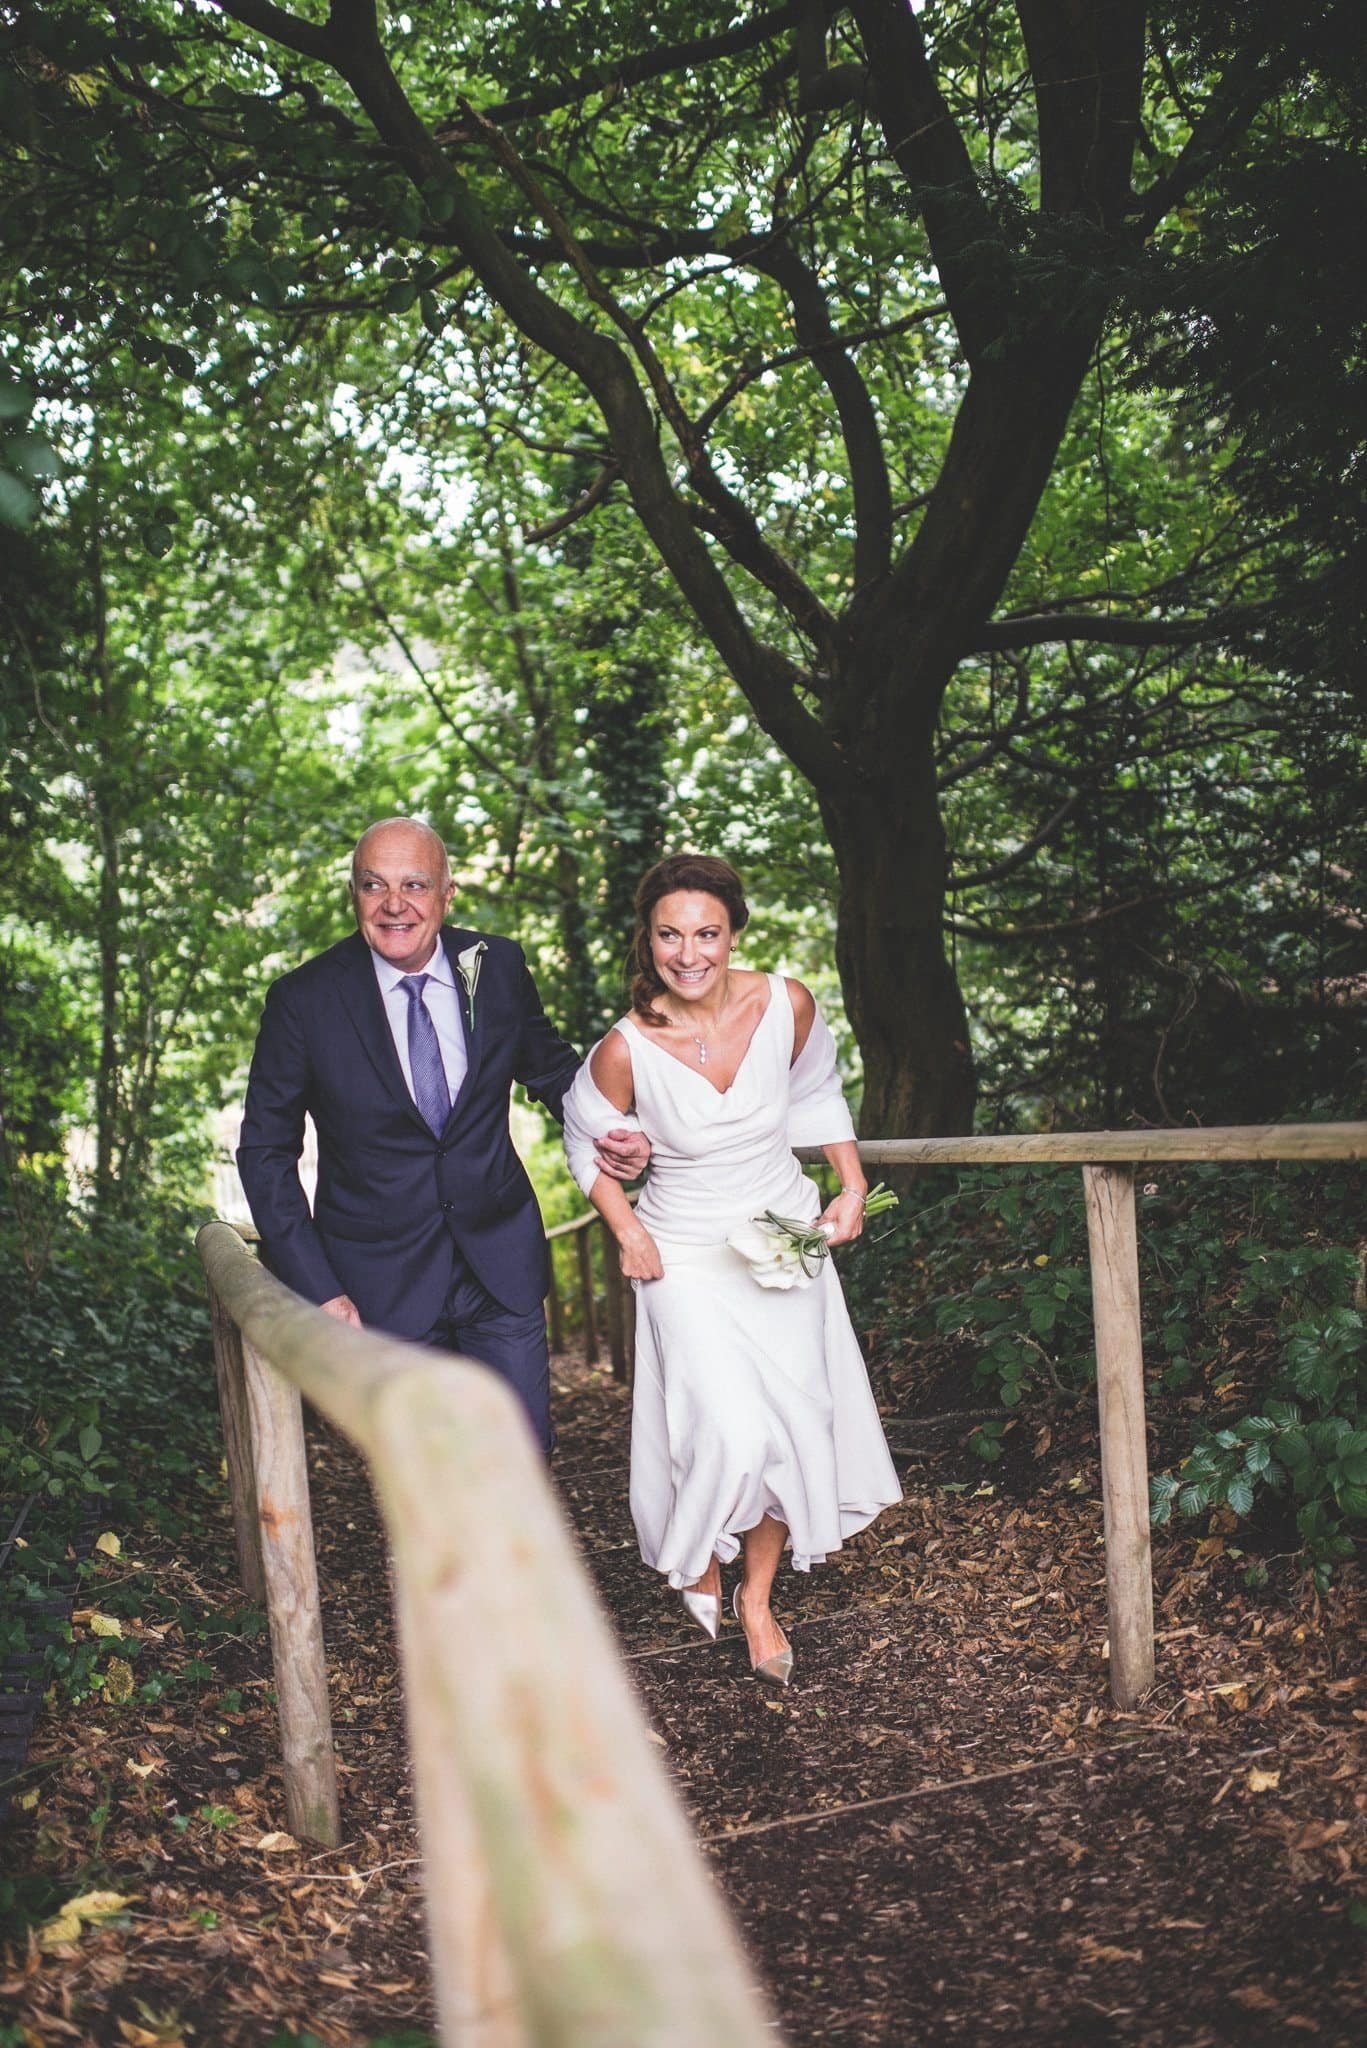 Ilaria and her father climb the stairs to the ceremony venue on Hampstead Heath